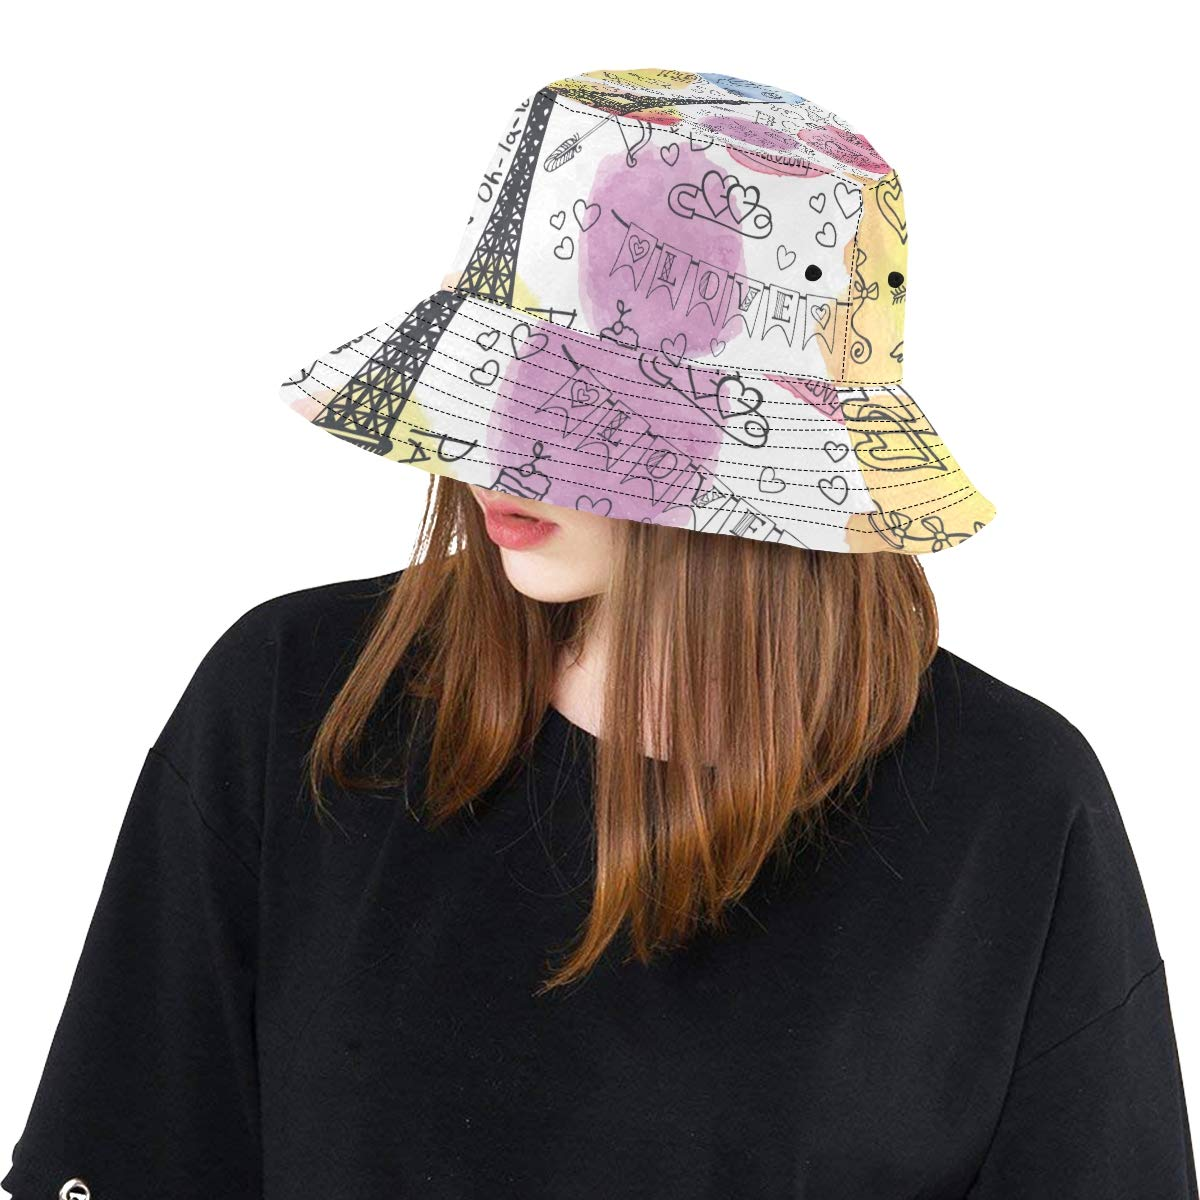 Love Paris Travel France Card New Summer Unisex Cotton Fashion Fishing Sun Bucket Hats for Kid Teens Women and Men with Customize Top Packable Fisherman Cap for Outdoor Travel